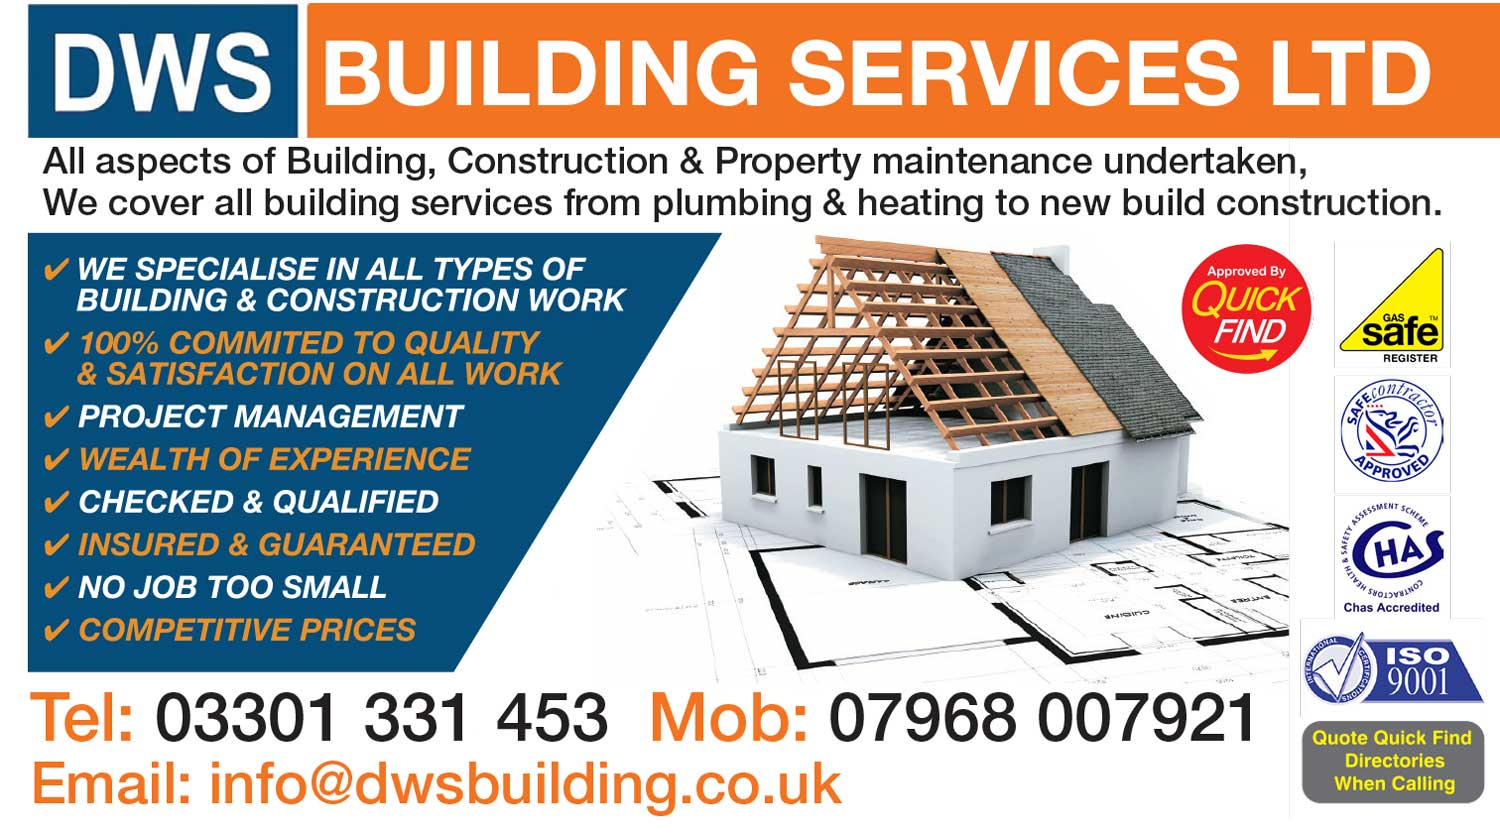 DWS Building Services Ltd